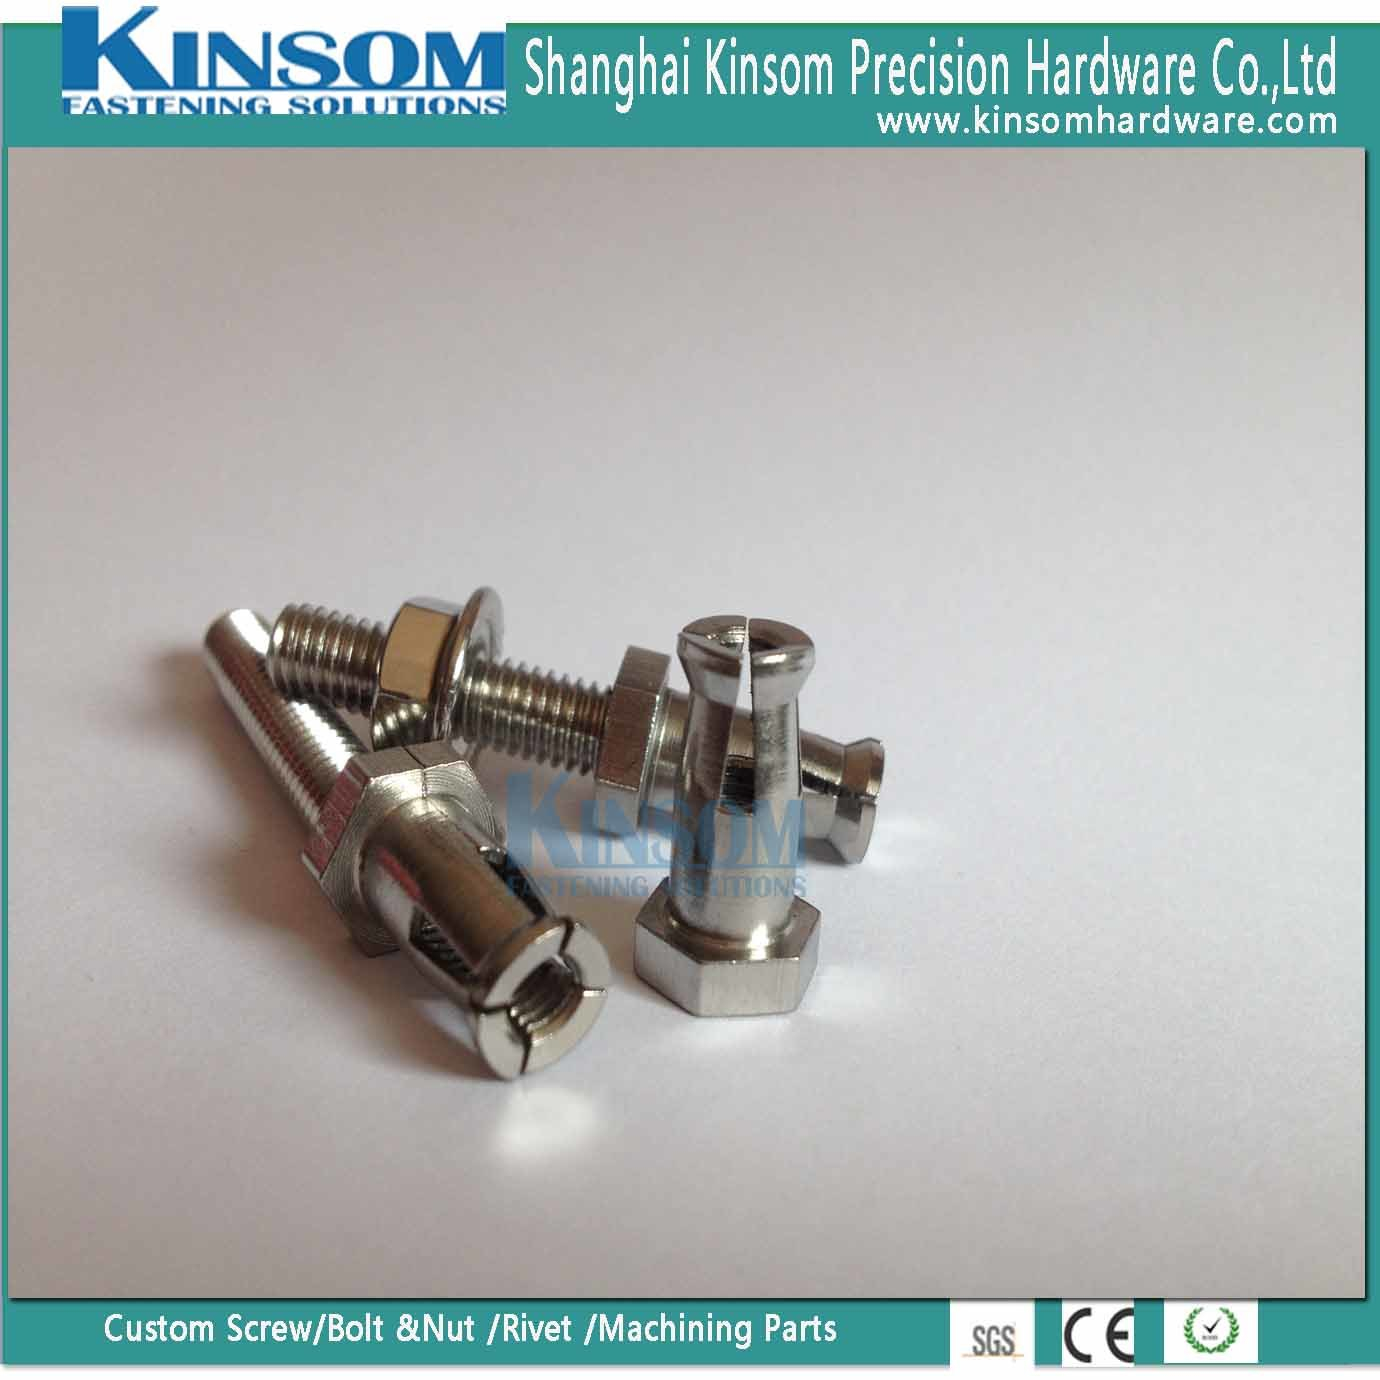 Stainless Steel Expansion Undercut Bolt and Hex Flange Nut of Assembly Parts pictures & photos